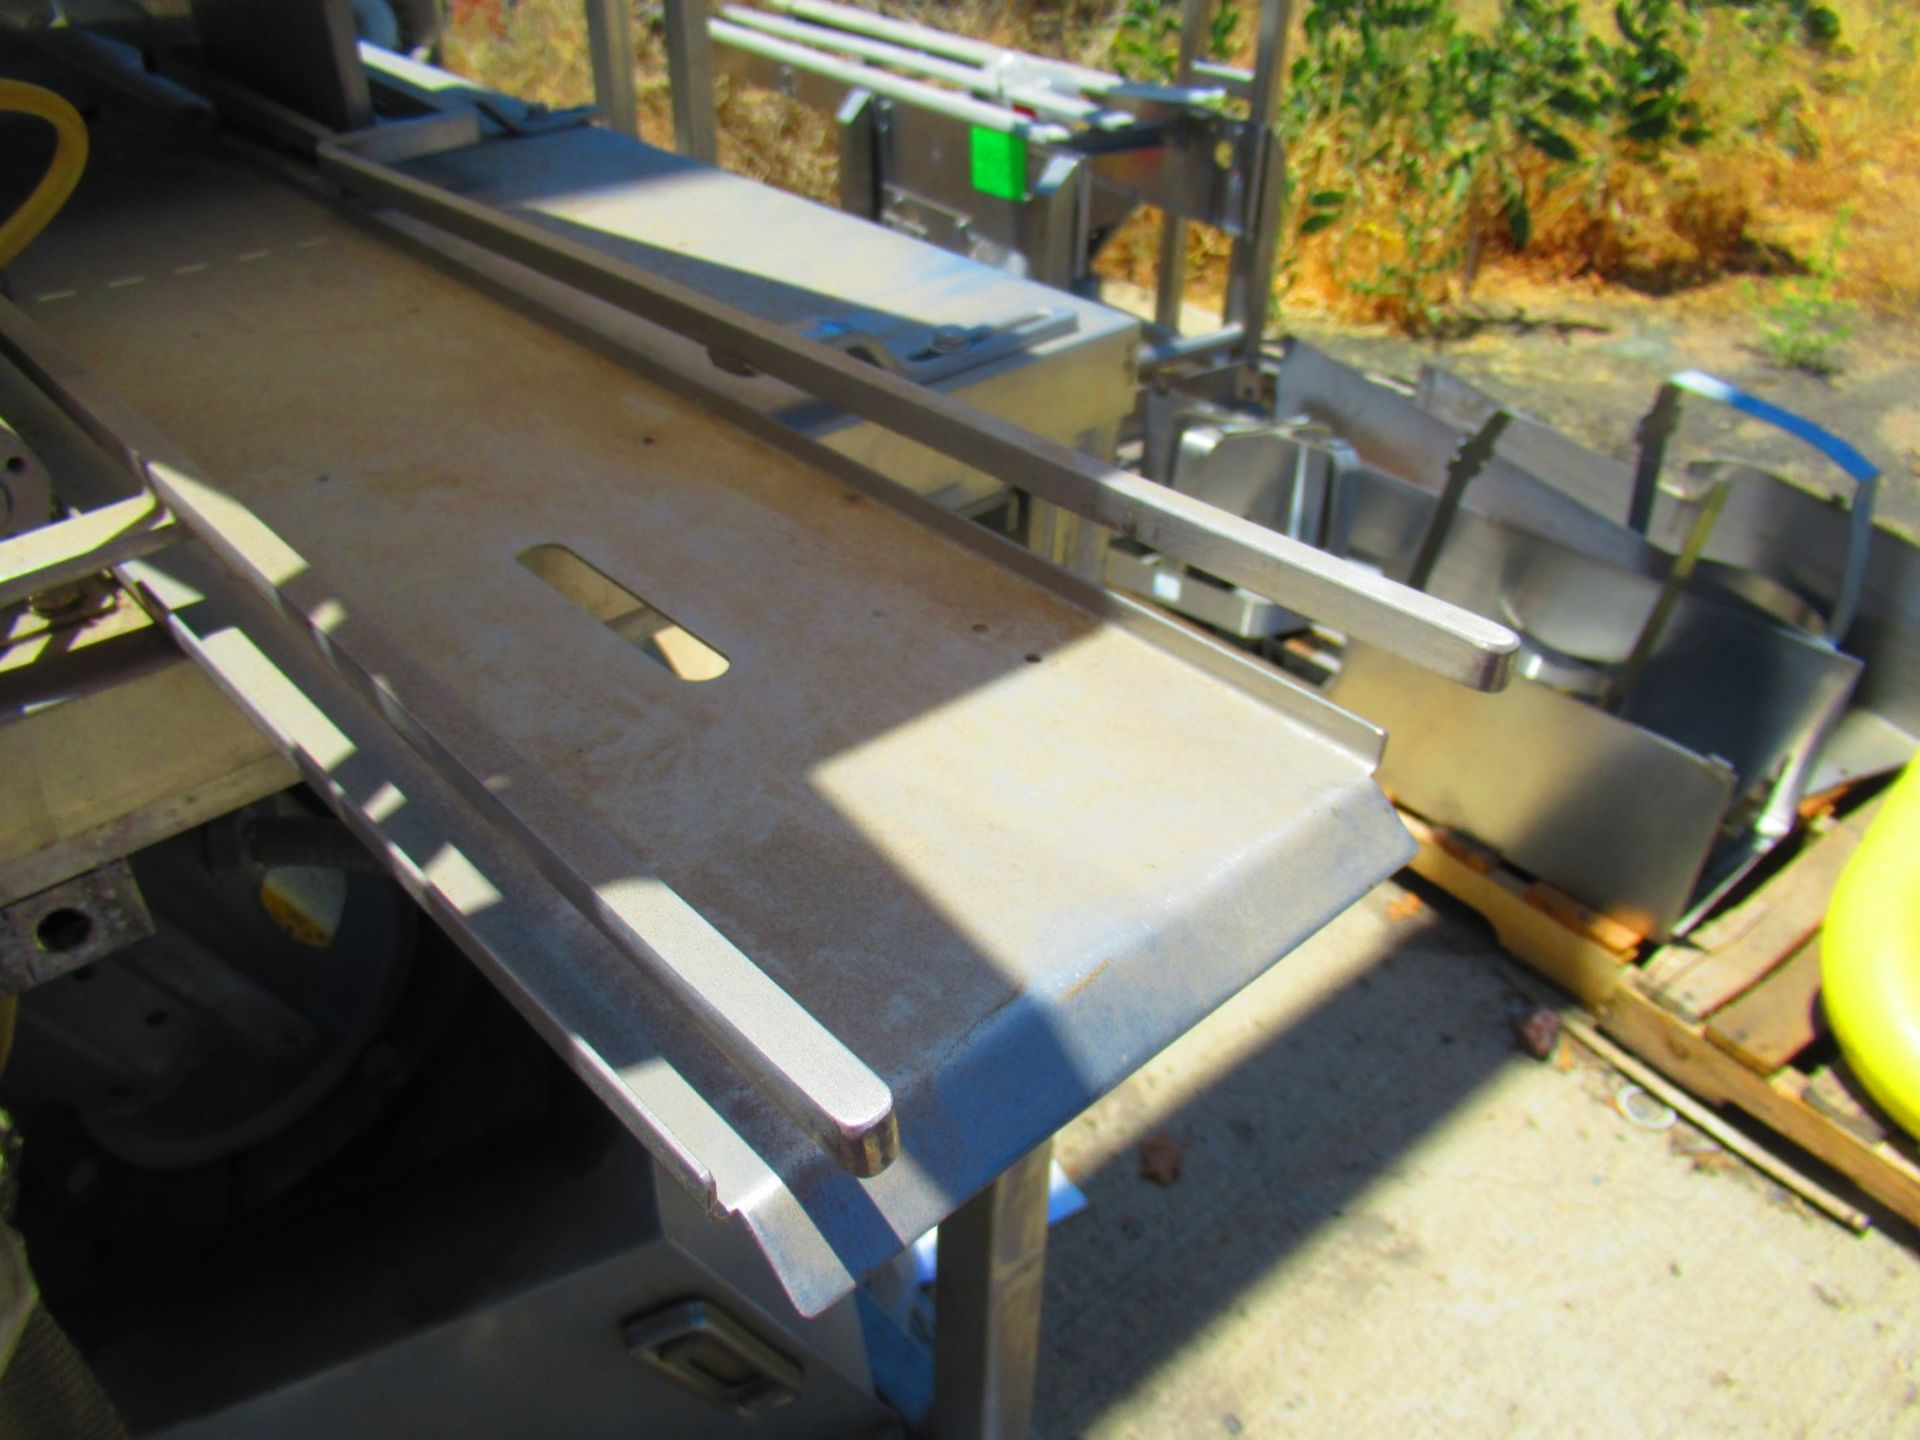 Hydraulic Can Crusher - Image 4 of 6